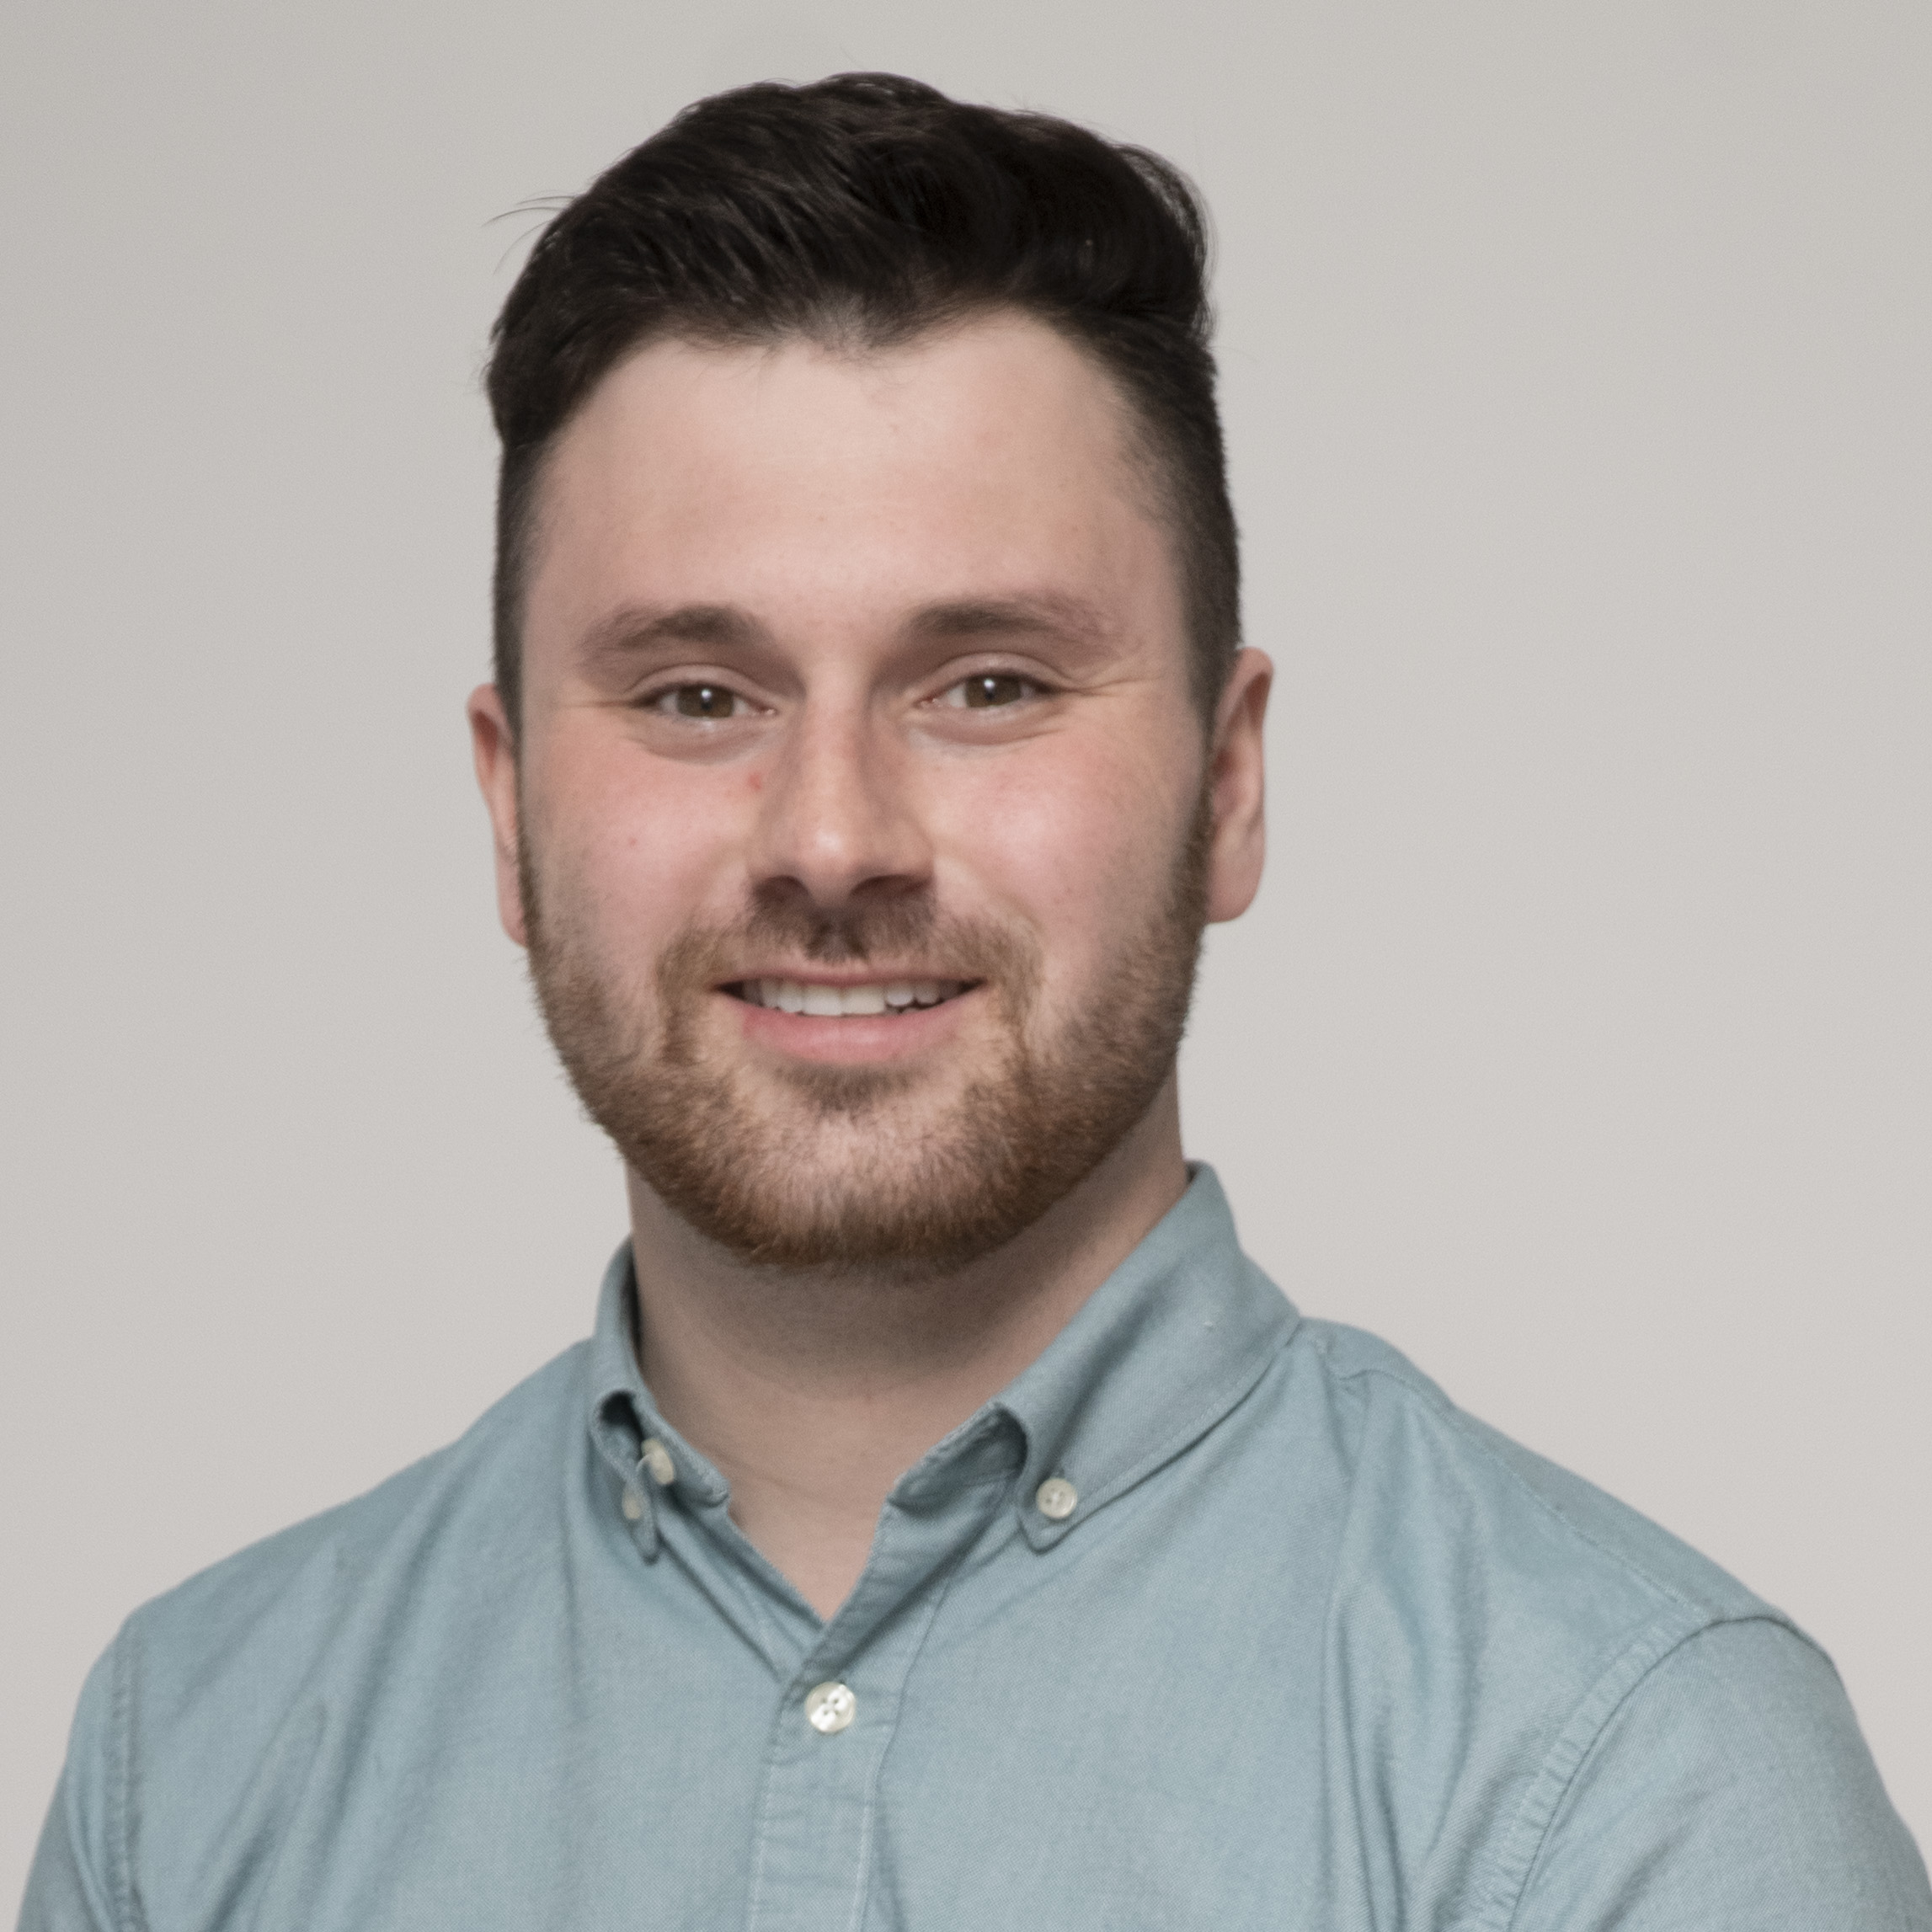 Dominic Guimond-Proulx - Sales Manager - Used Vehicles